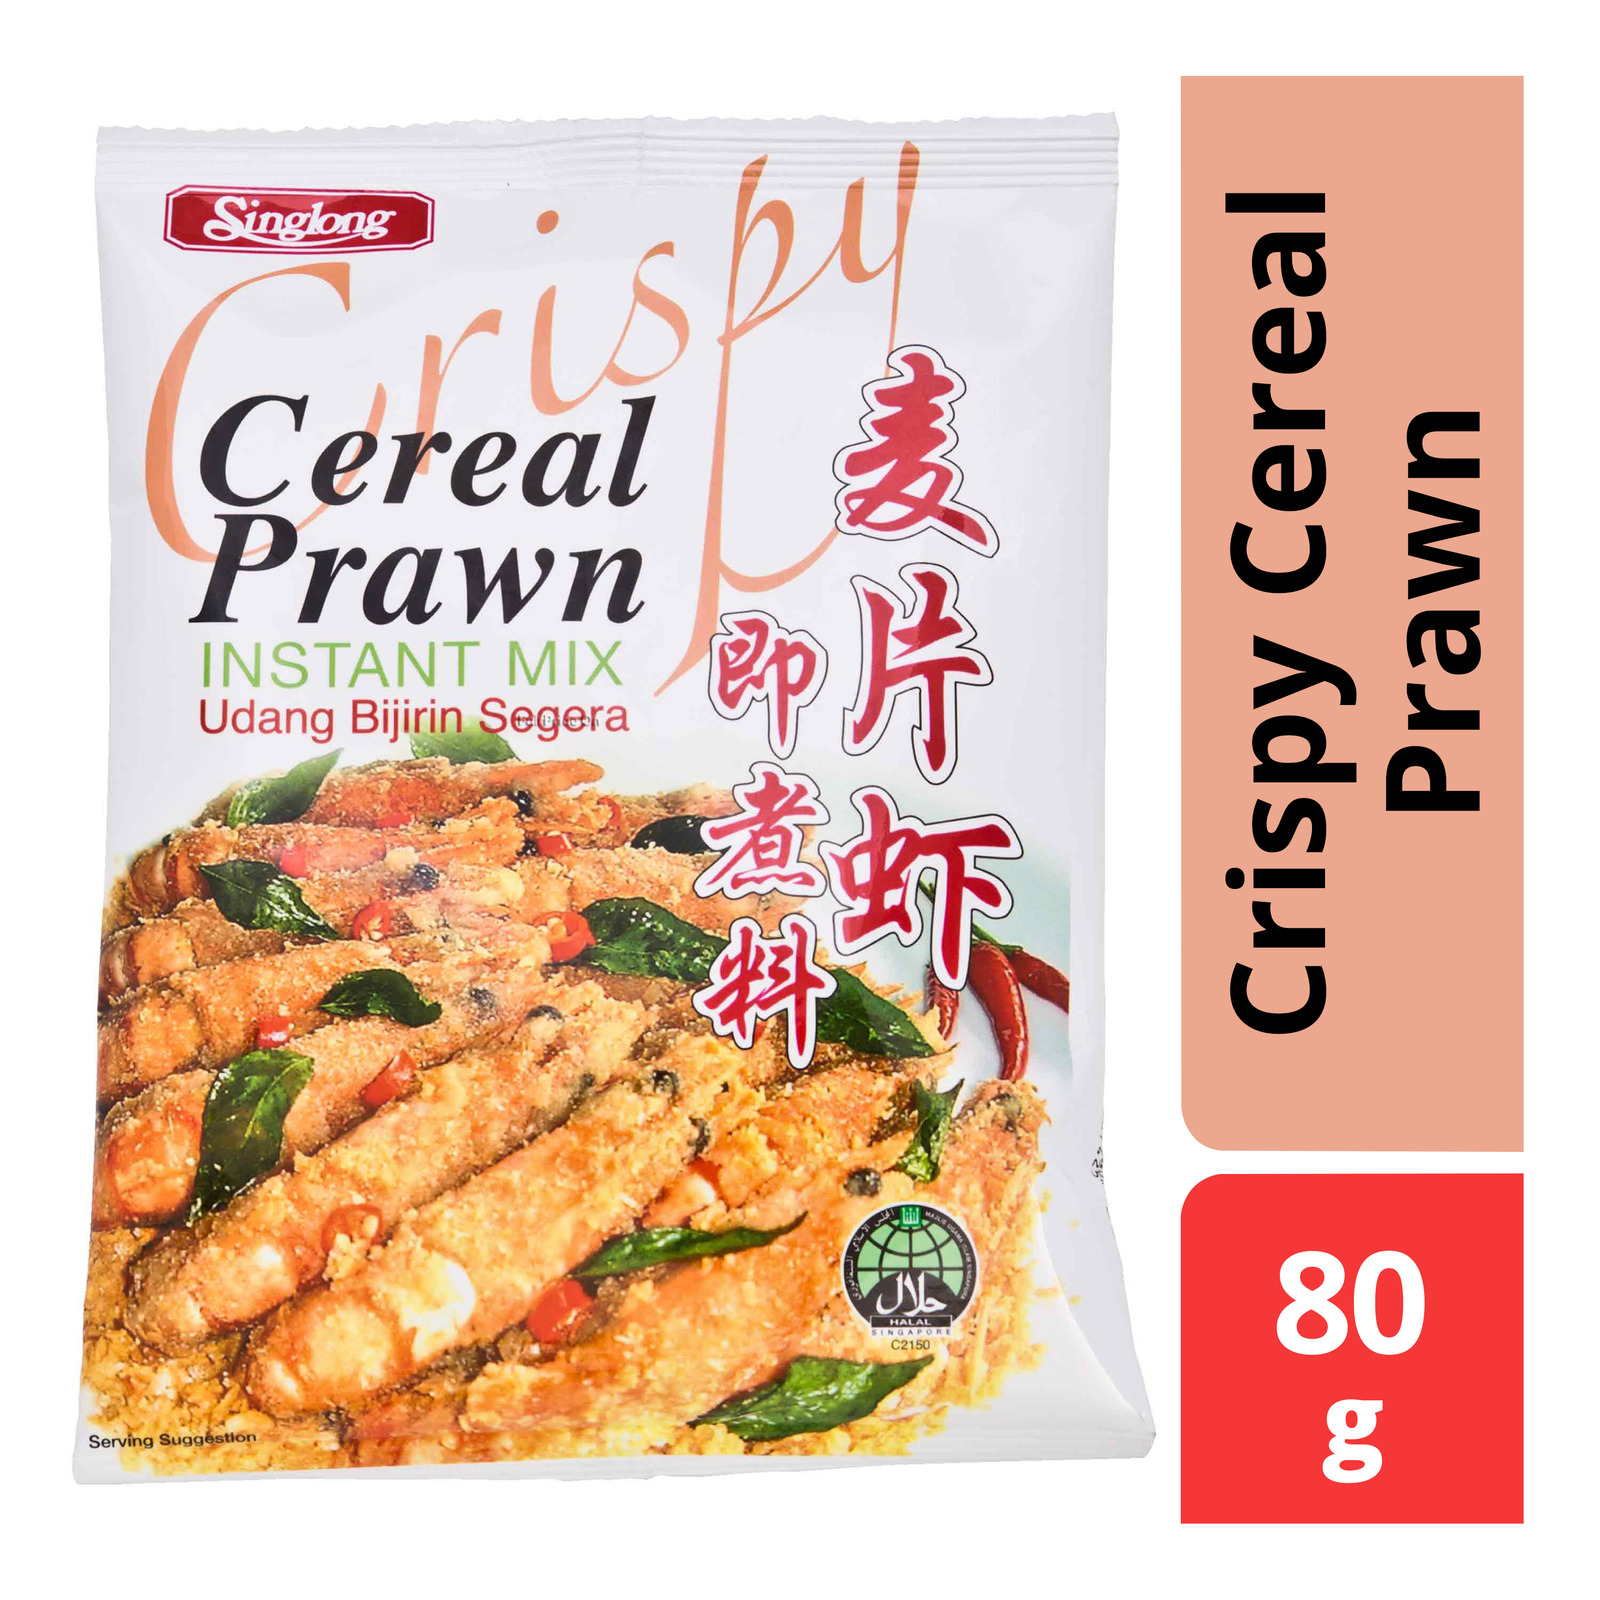 Singlong Mix - Crispy Cereal Prawn